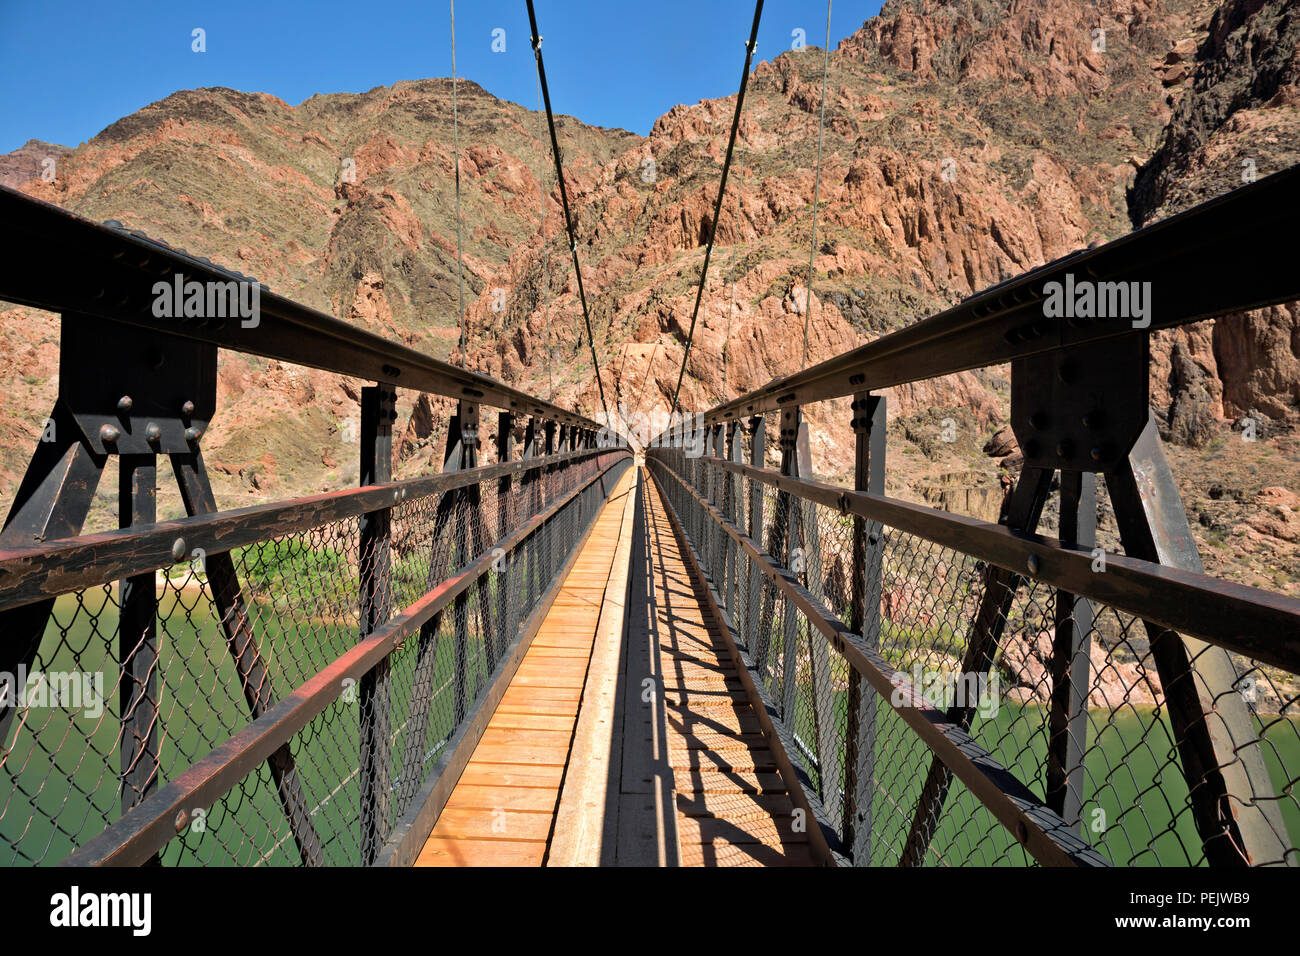 AZ00289-00...ARIZONA - The Black Bridge over the Colorado River on the South Kaibab Trail in Grand Canyon National Park. Stock Photo